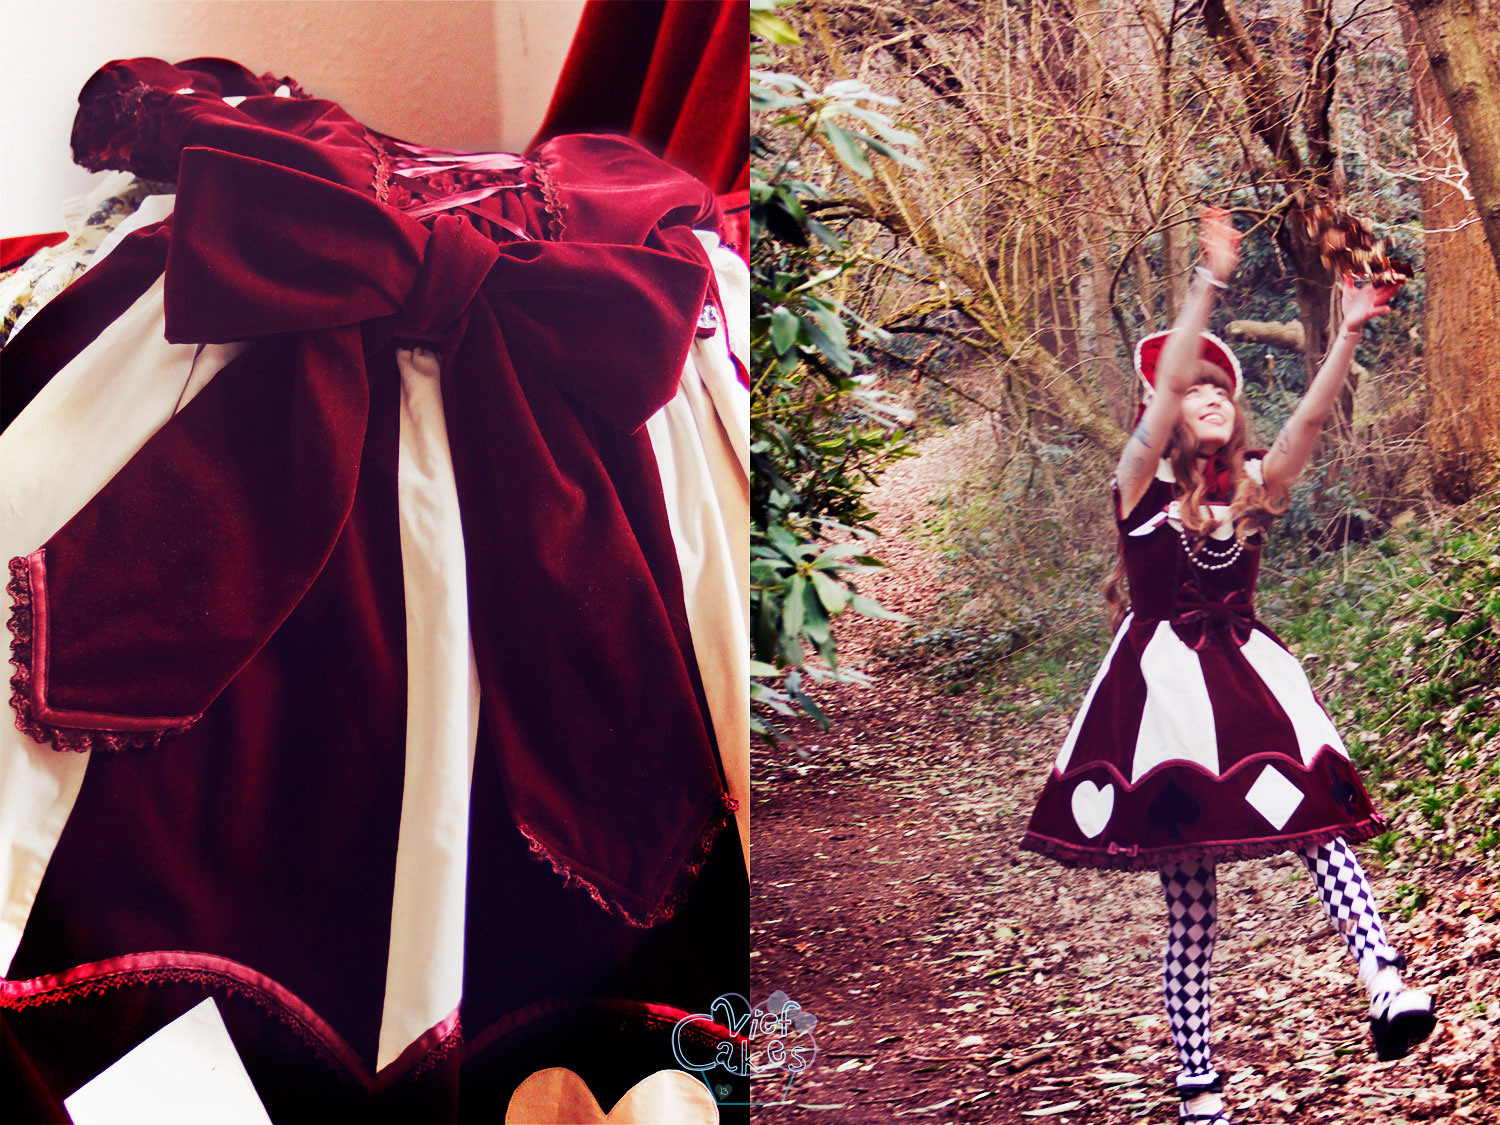 ☆ Lolita in the woods ☆